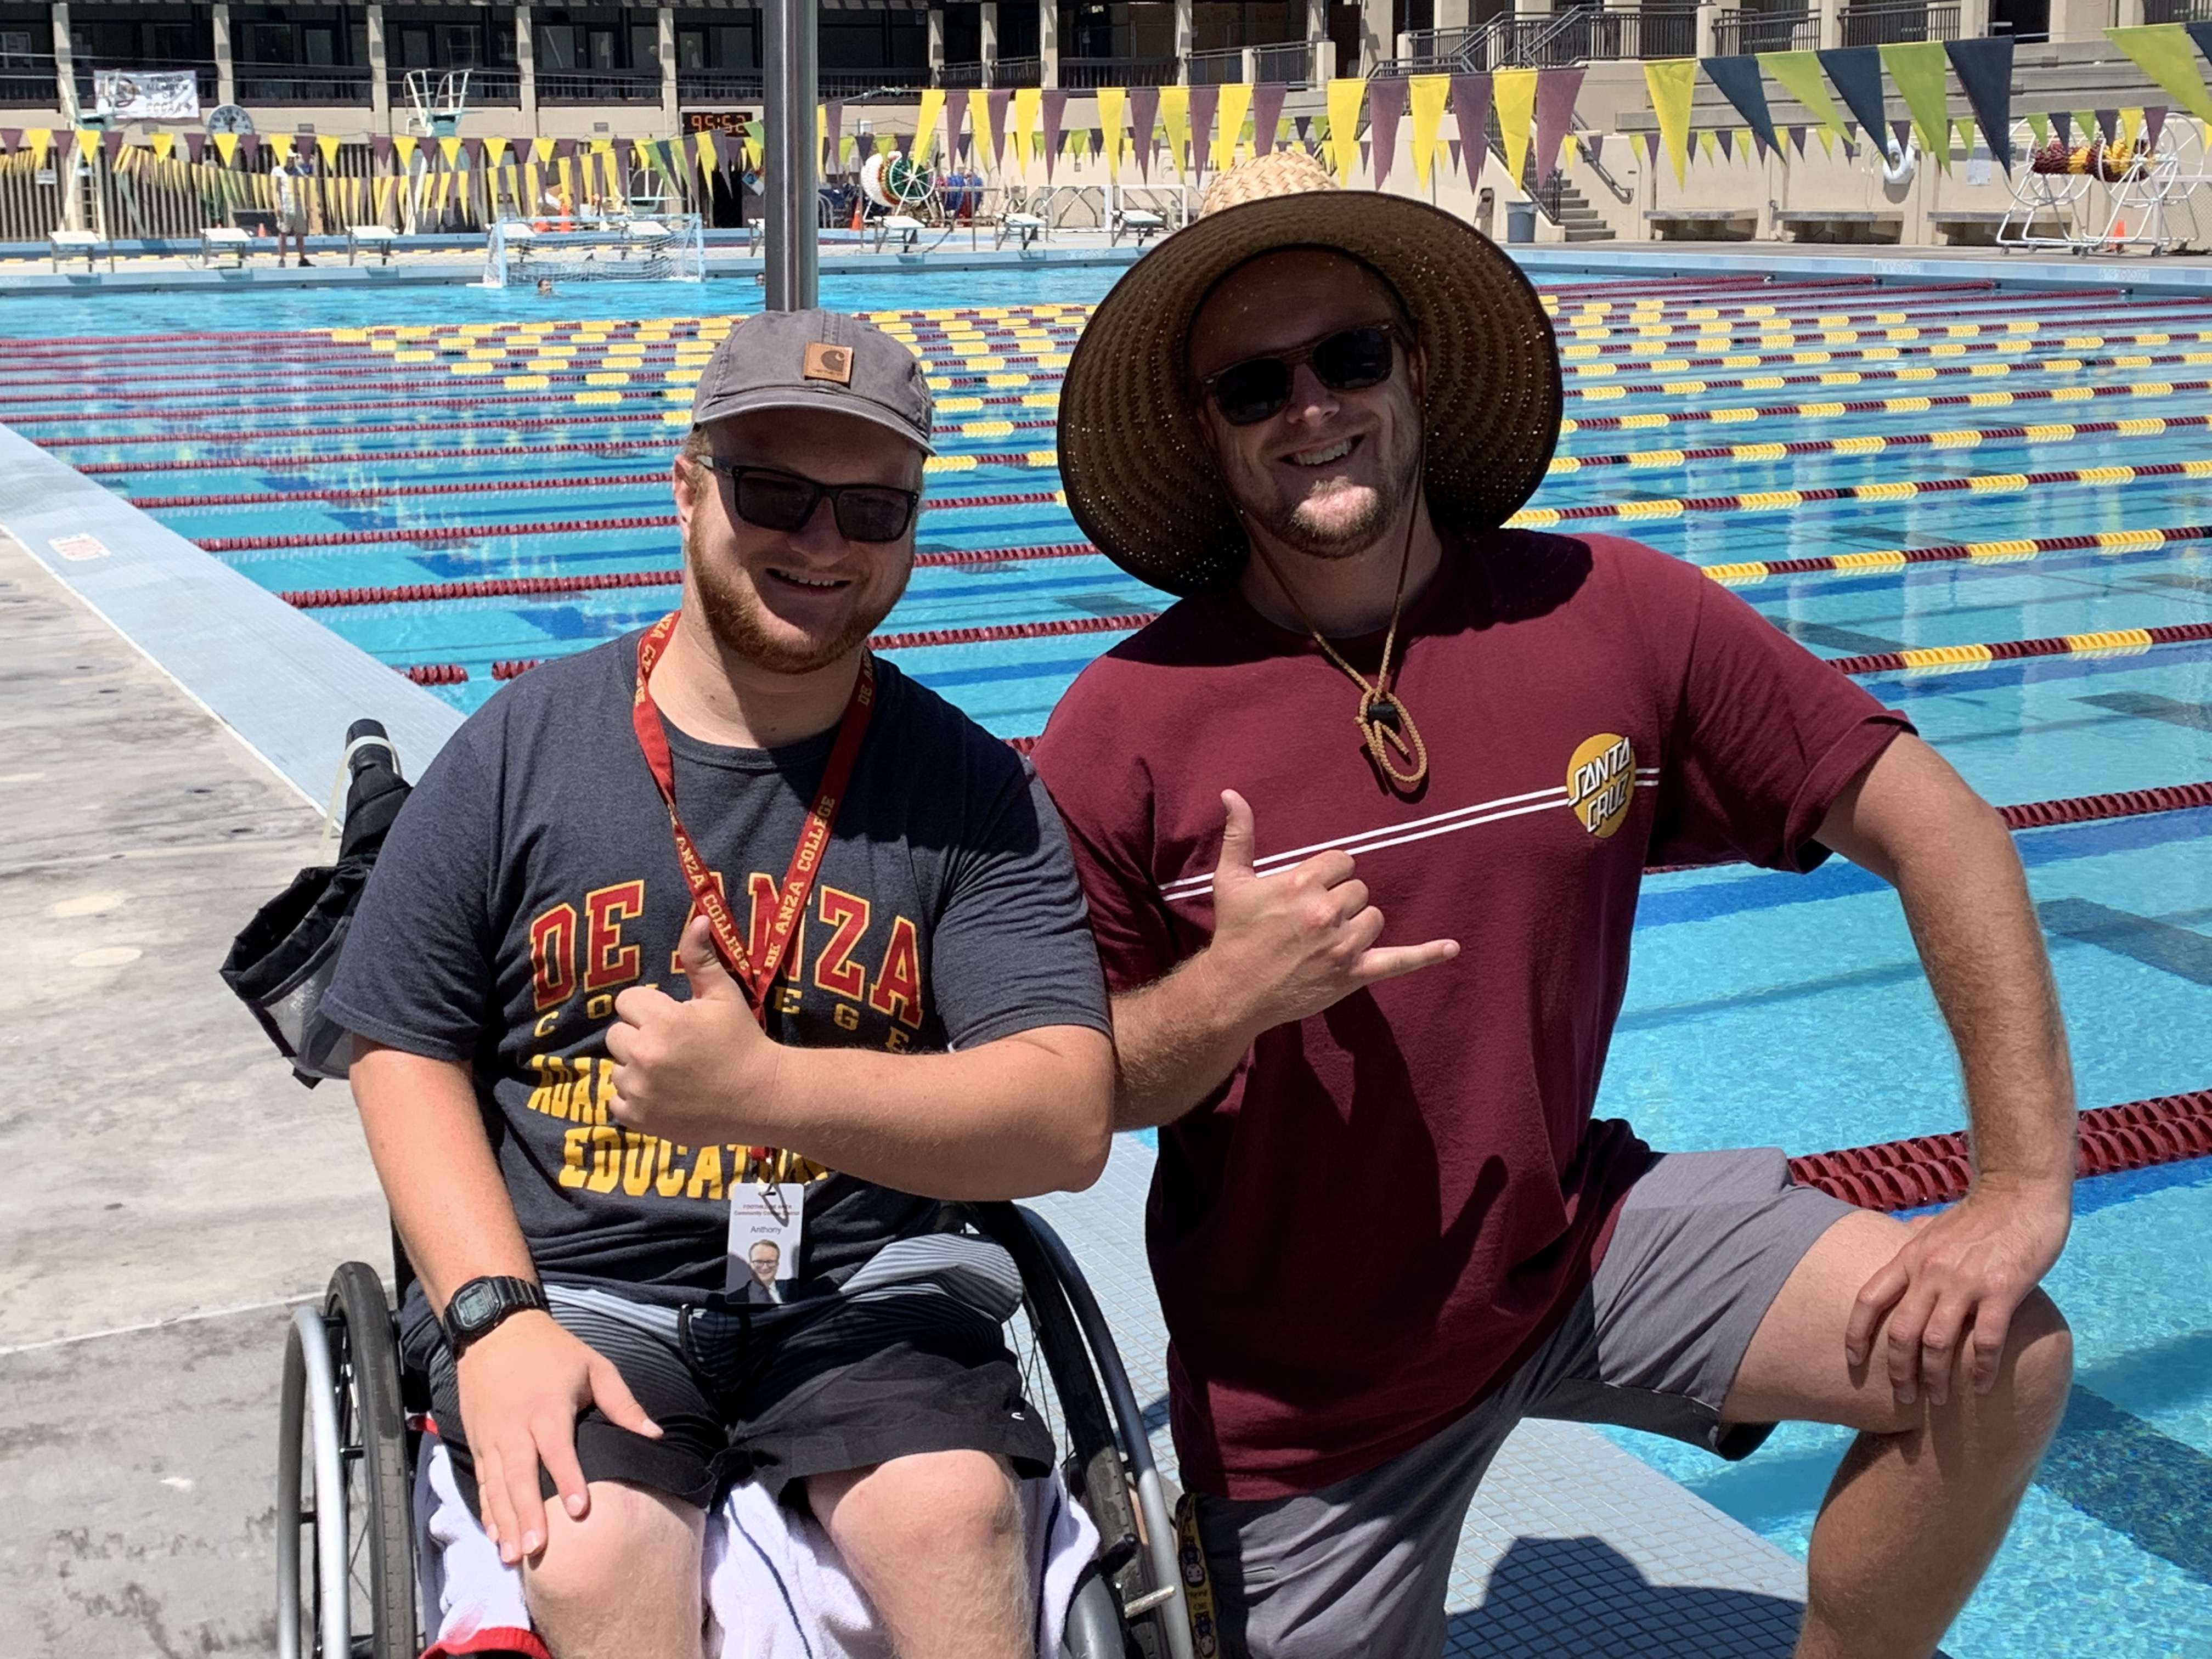 Anthony Salas & Casey R. Smiling and Hanging Loose by the Pool